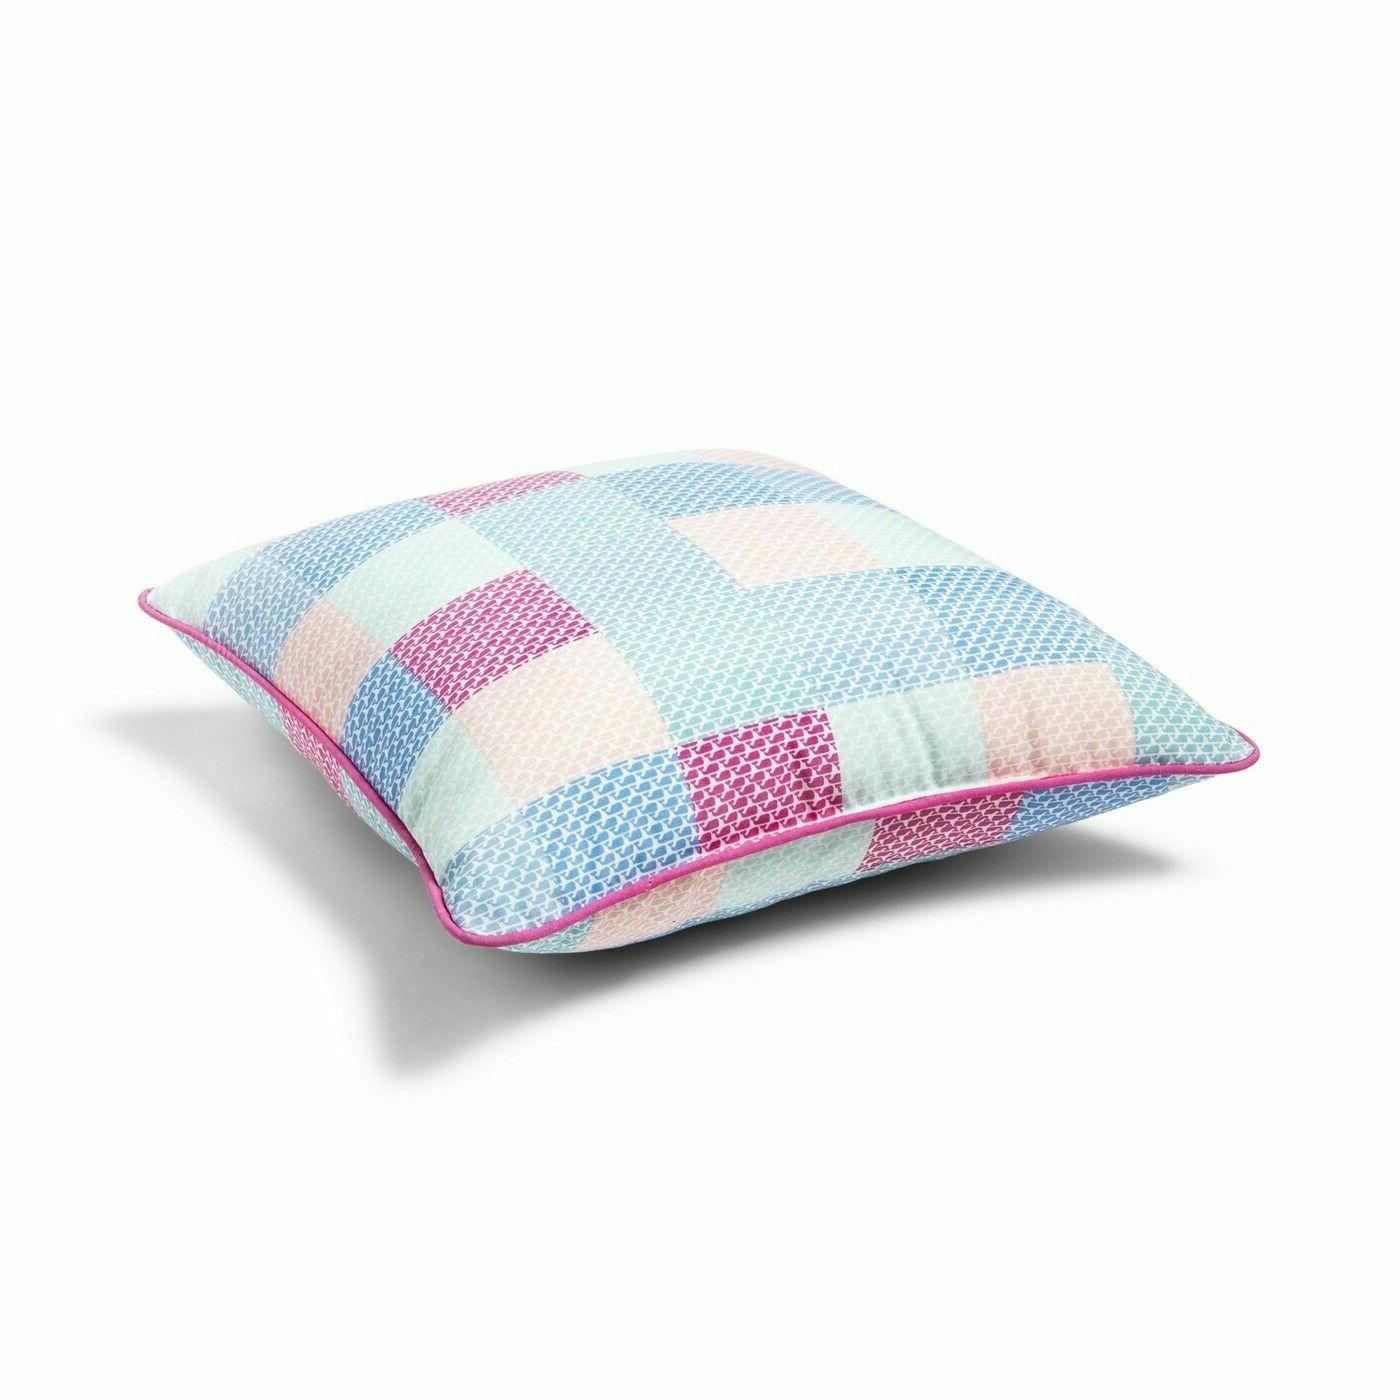 Vineyard Target 20 x Throw Pillow Pink Blue ON